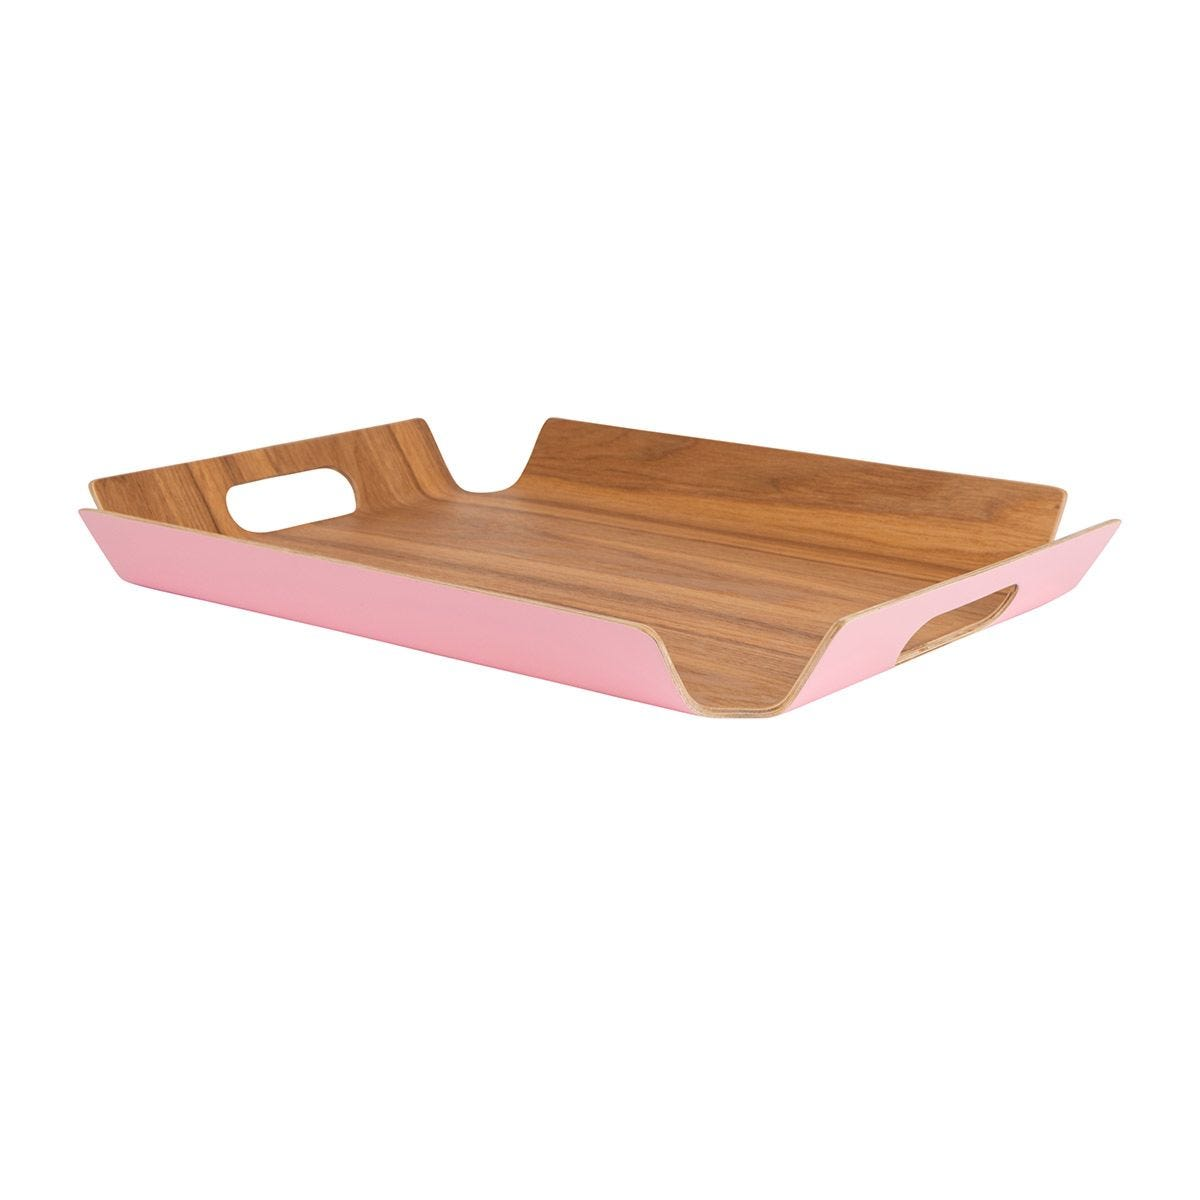 Summerhouse Medium Willow Tray - Candy Pink